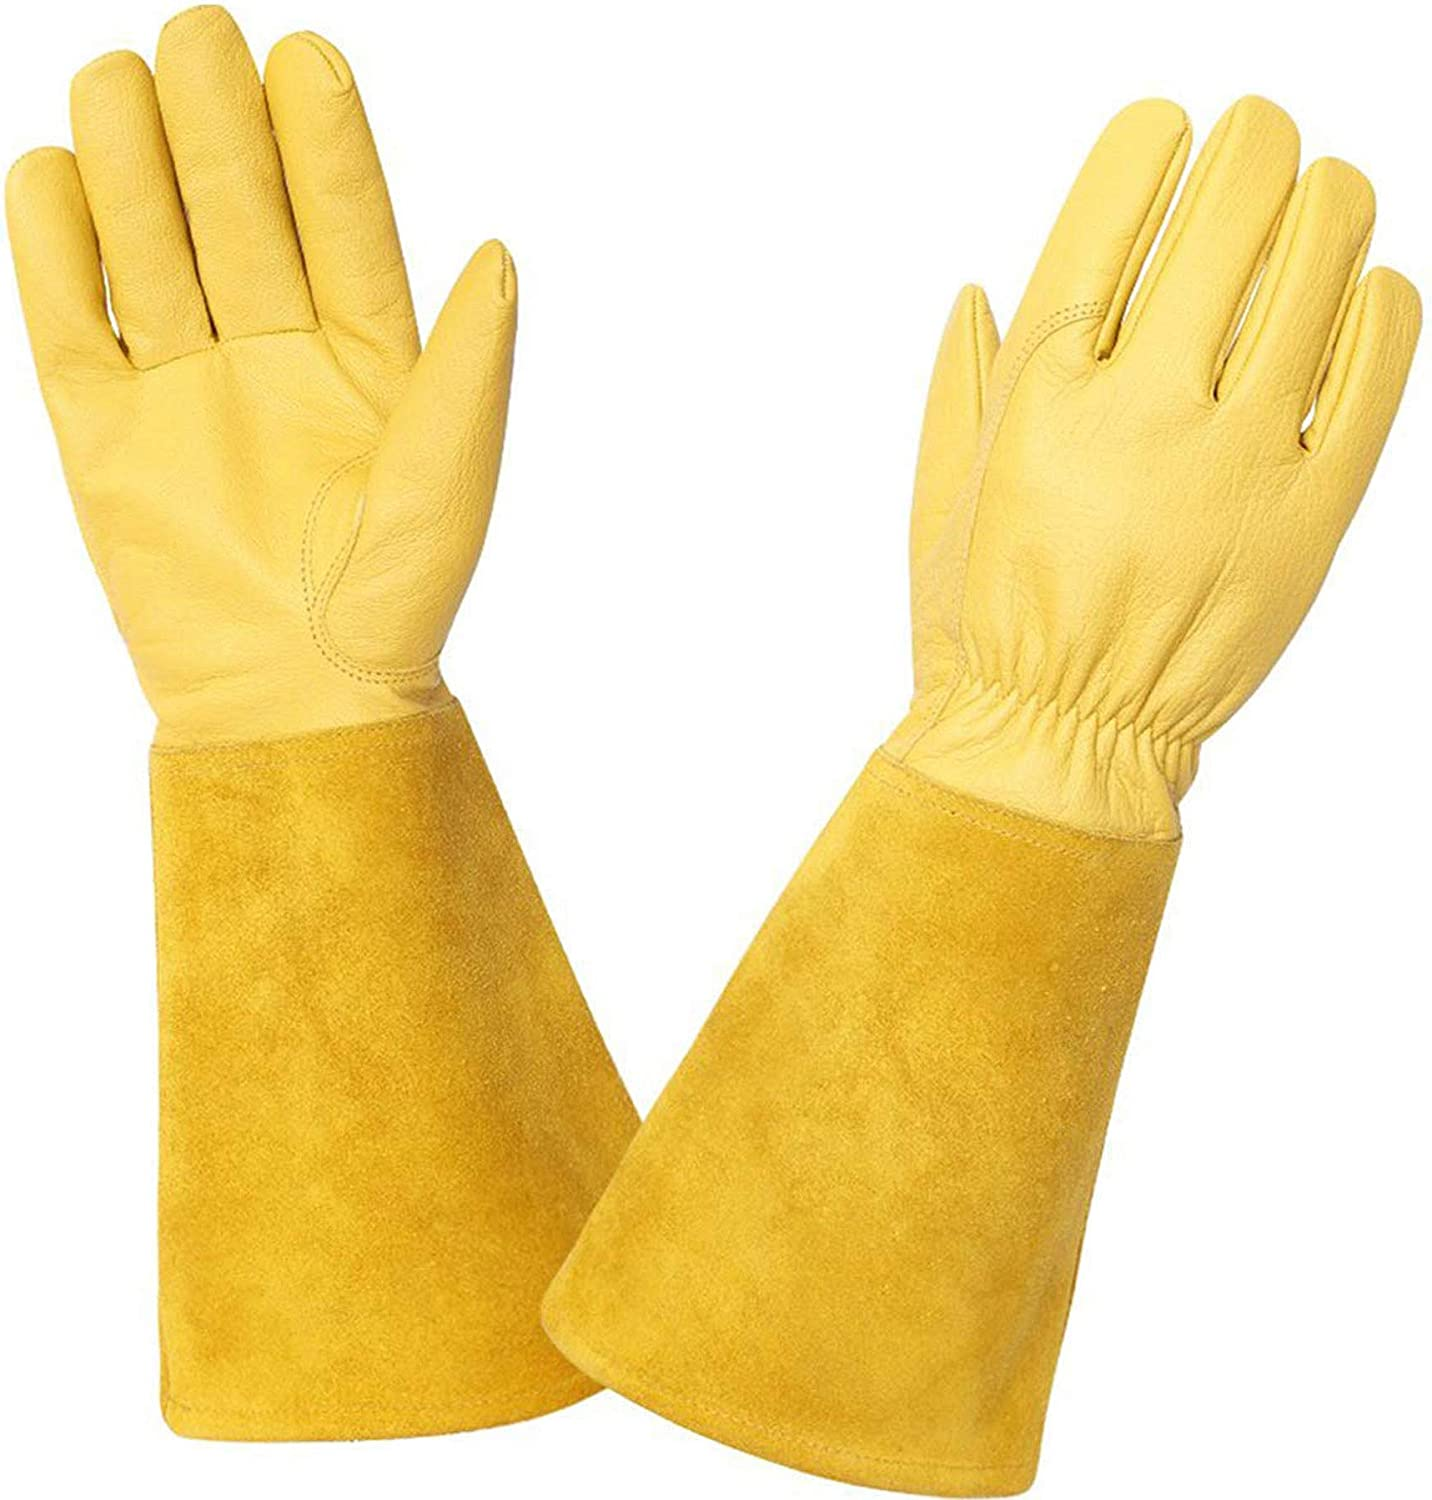 KIM YUAN Rose Pruning Gloves for Men and Women. Thorn Proof Goatskin Leather Gardening Gloves with Long Sheepskin Gauntlet to Protect Your Arms Until The Elbow (Yellow-M)